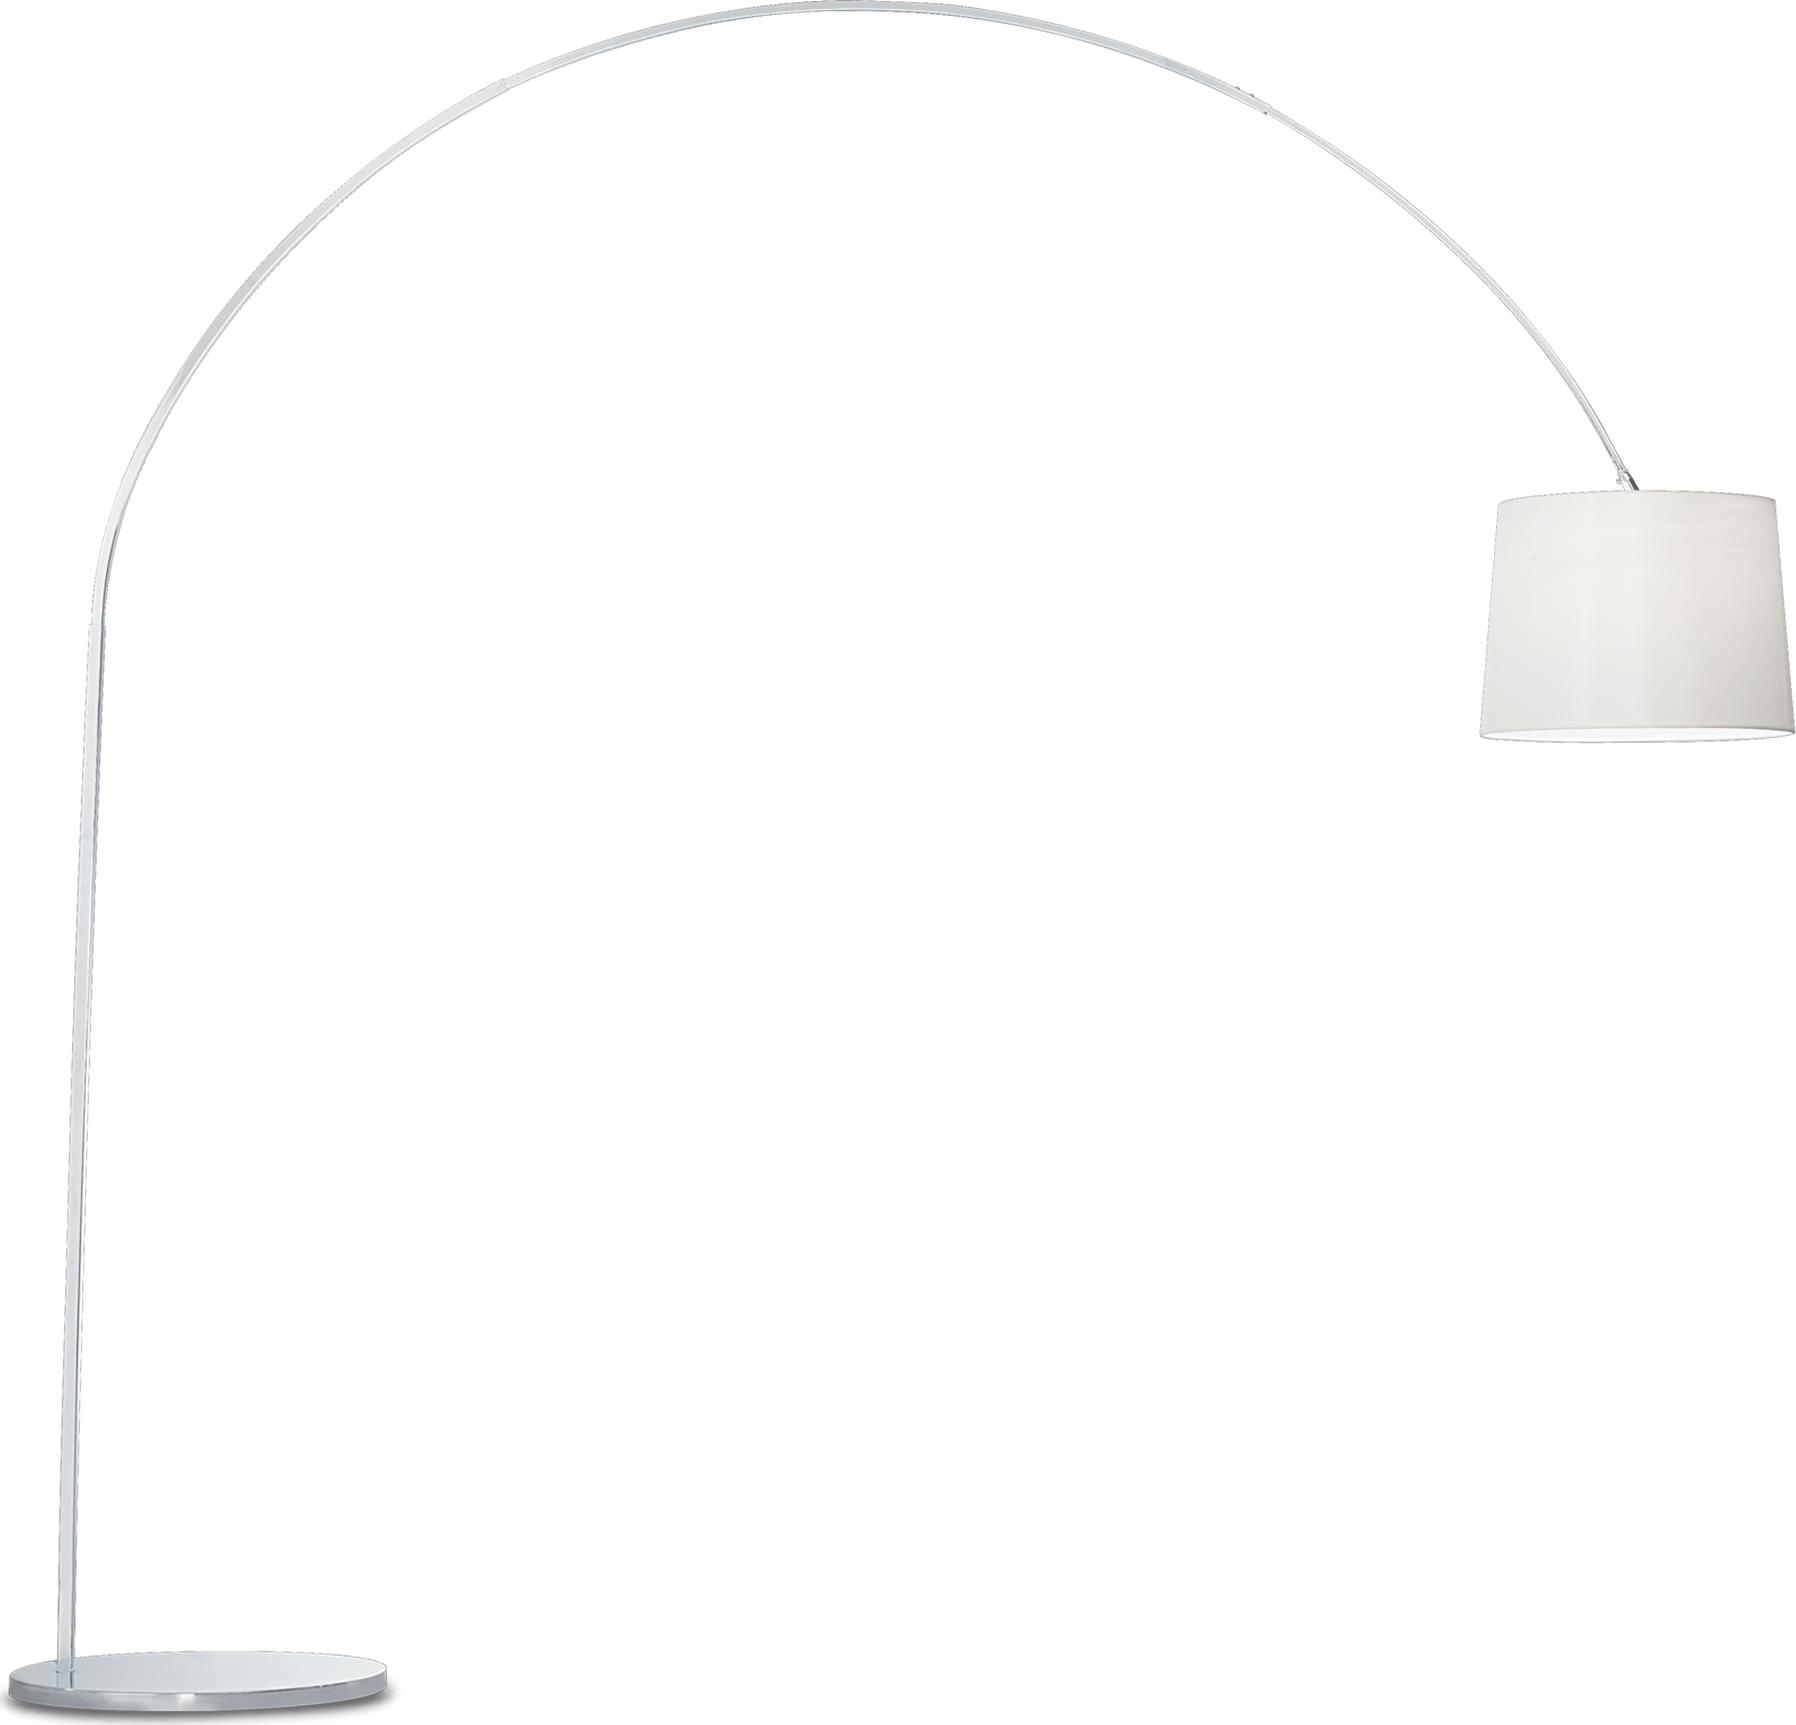 Ideal lux LED Dorsale bianco Lampe stehende 5W 12605